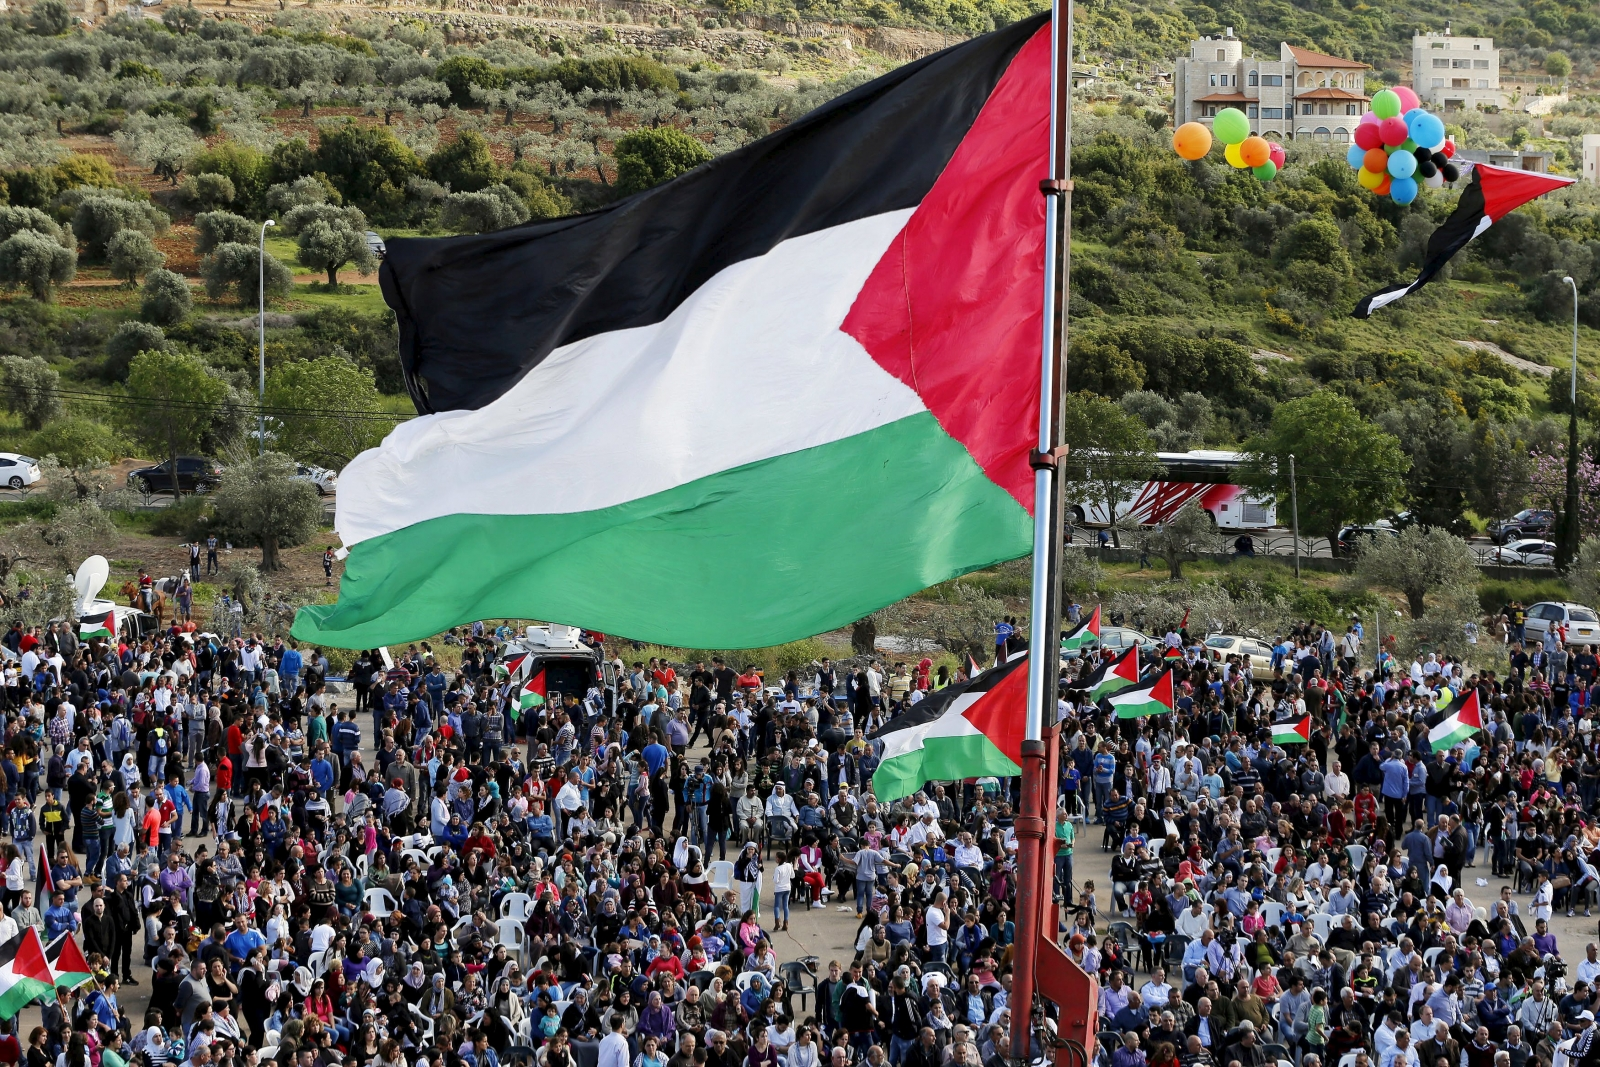 Palestinians to mark the 45th anniversary of Land Day with rallies in Arab towns in Israel